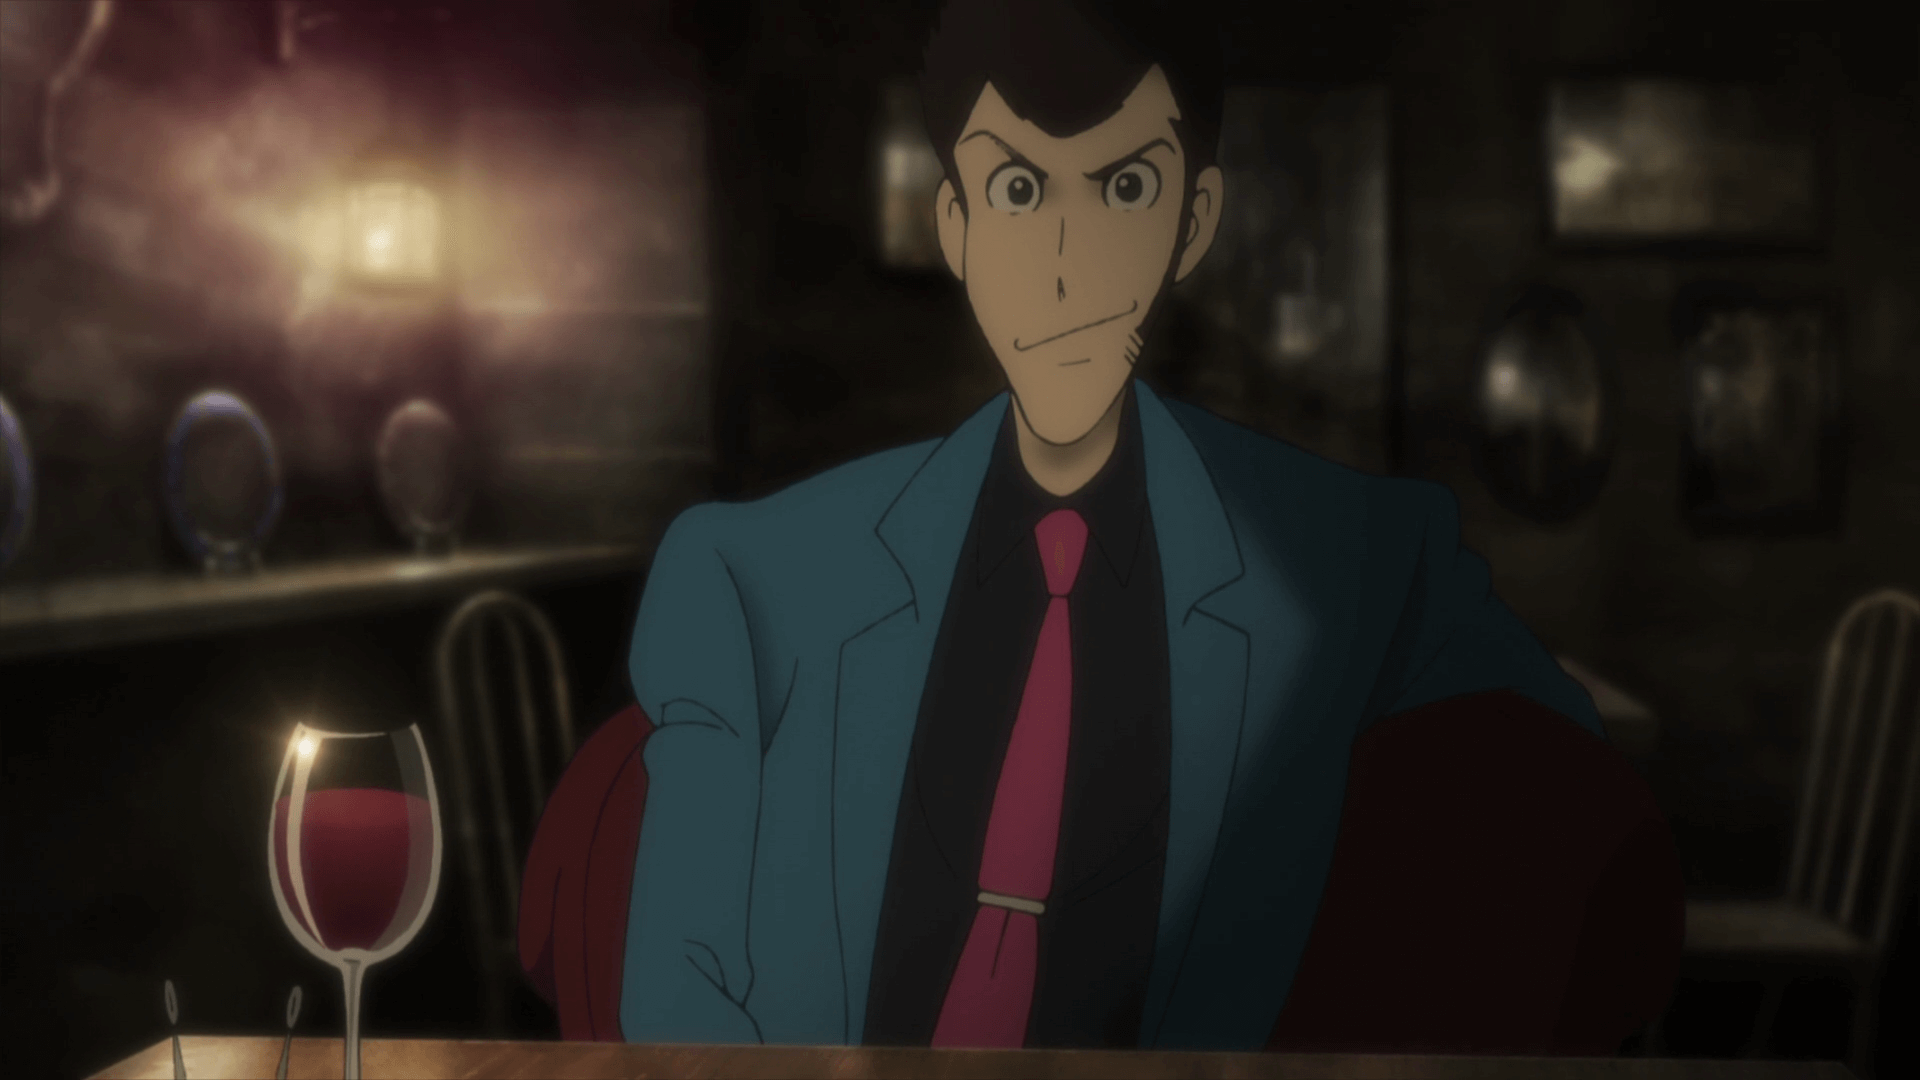 Lupin III Part V 07 001 1858 - Lupin III Part V Episode 07 Subtitle Indonesia